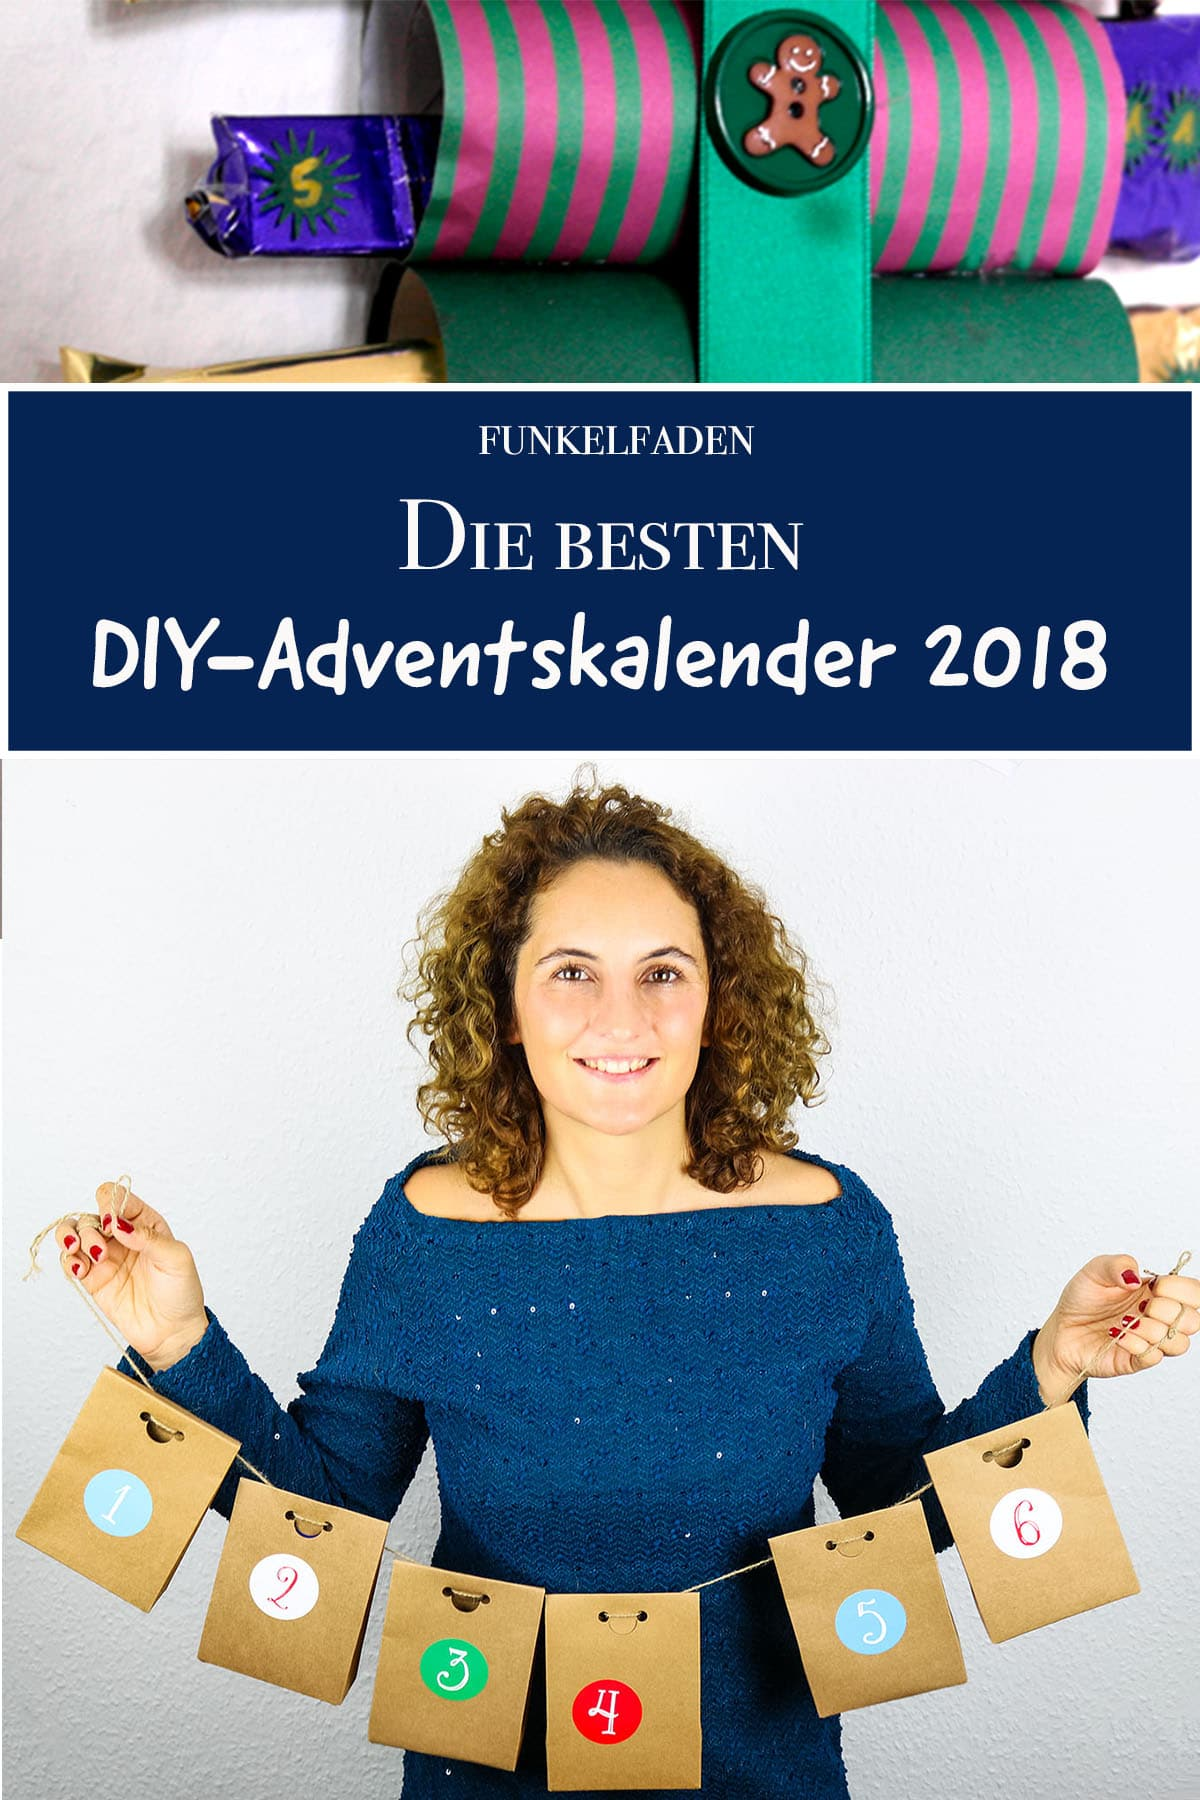 DIY adventskalender 2018